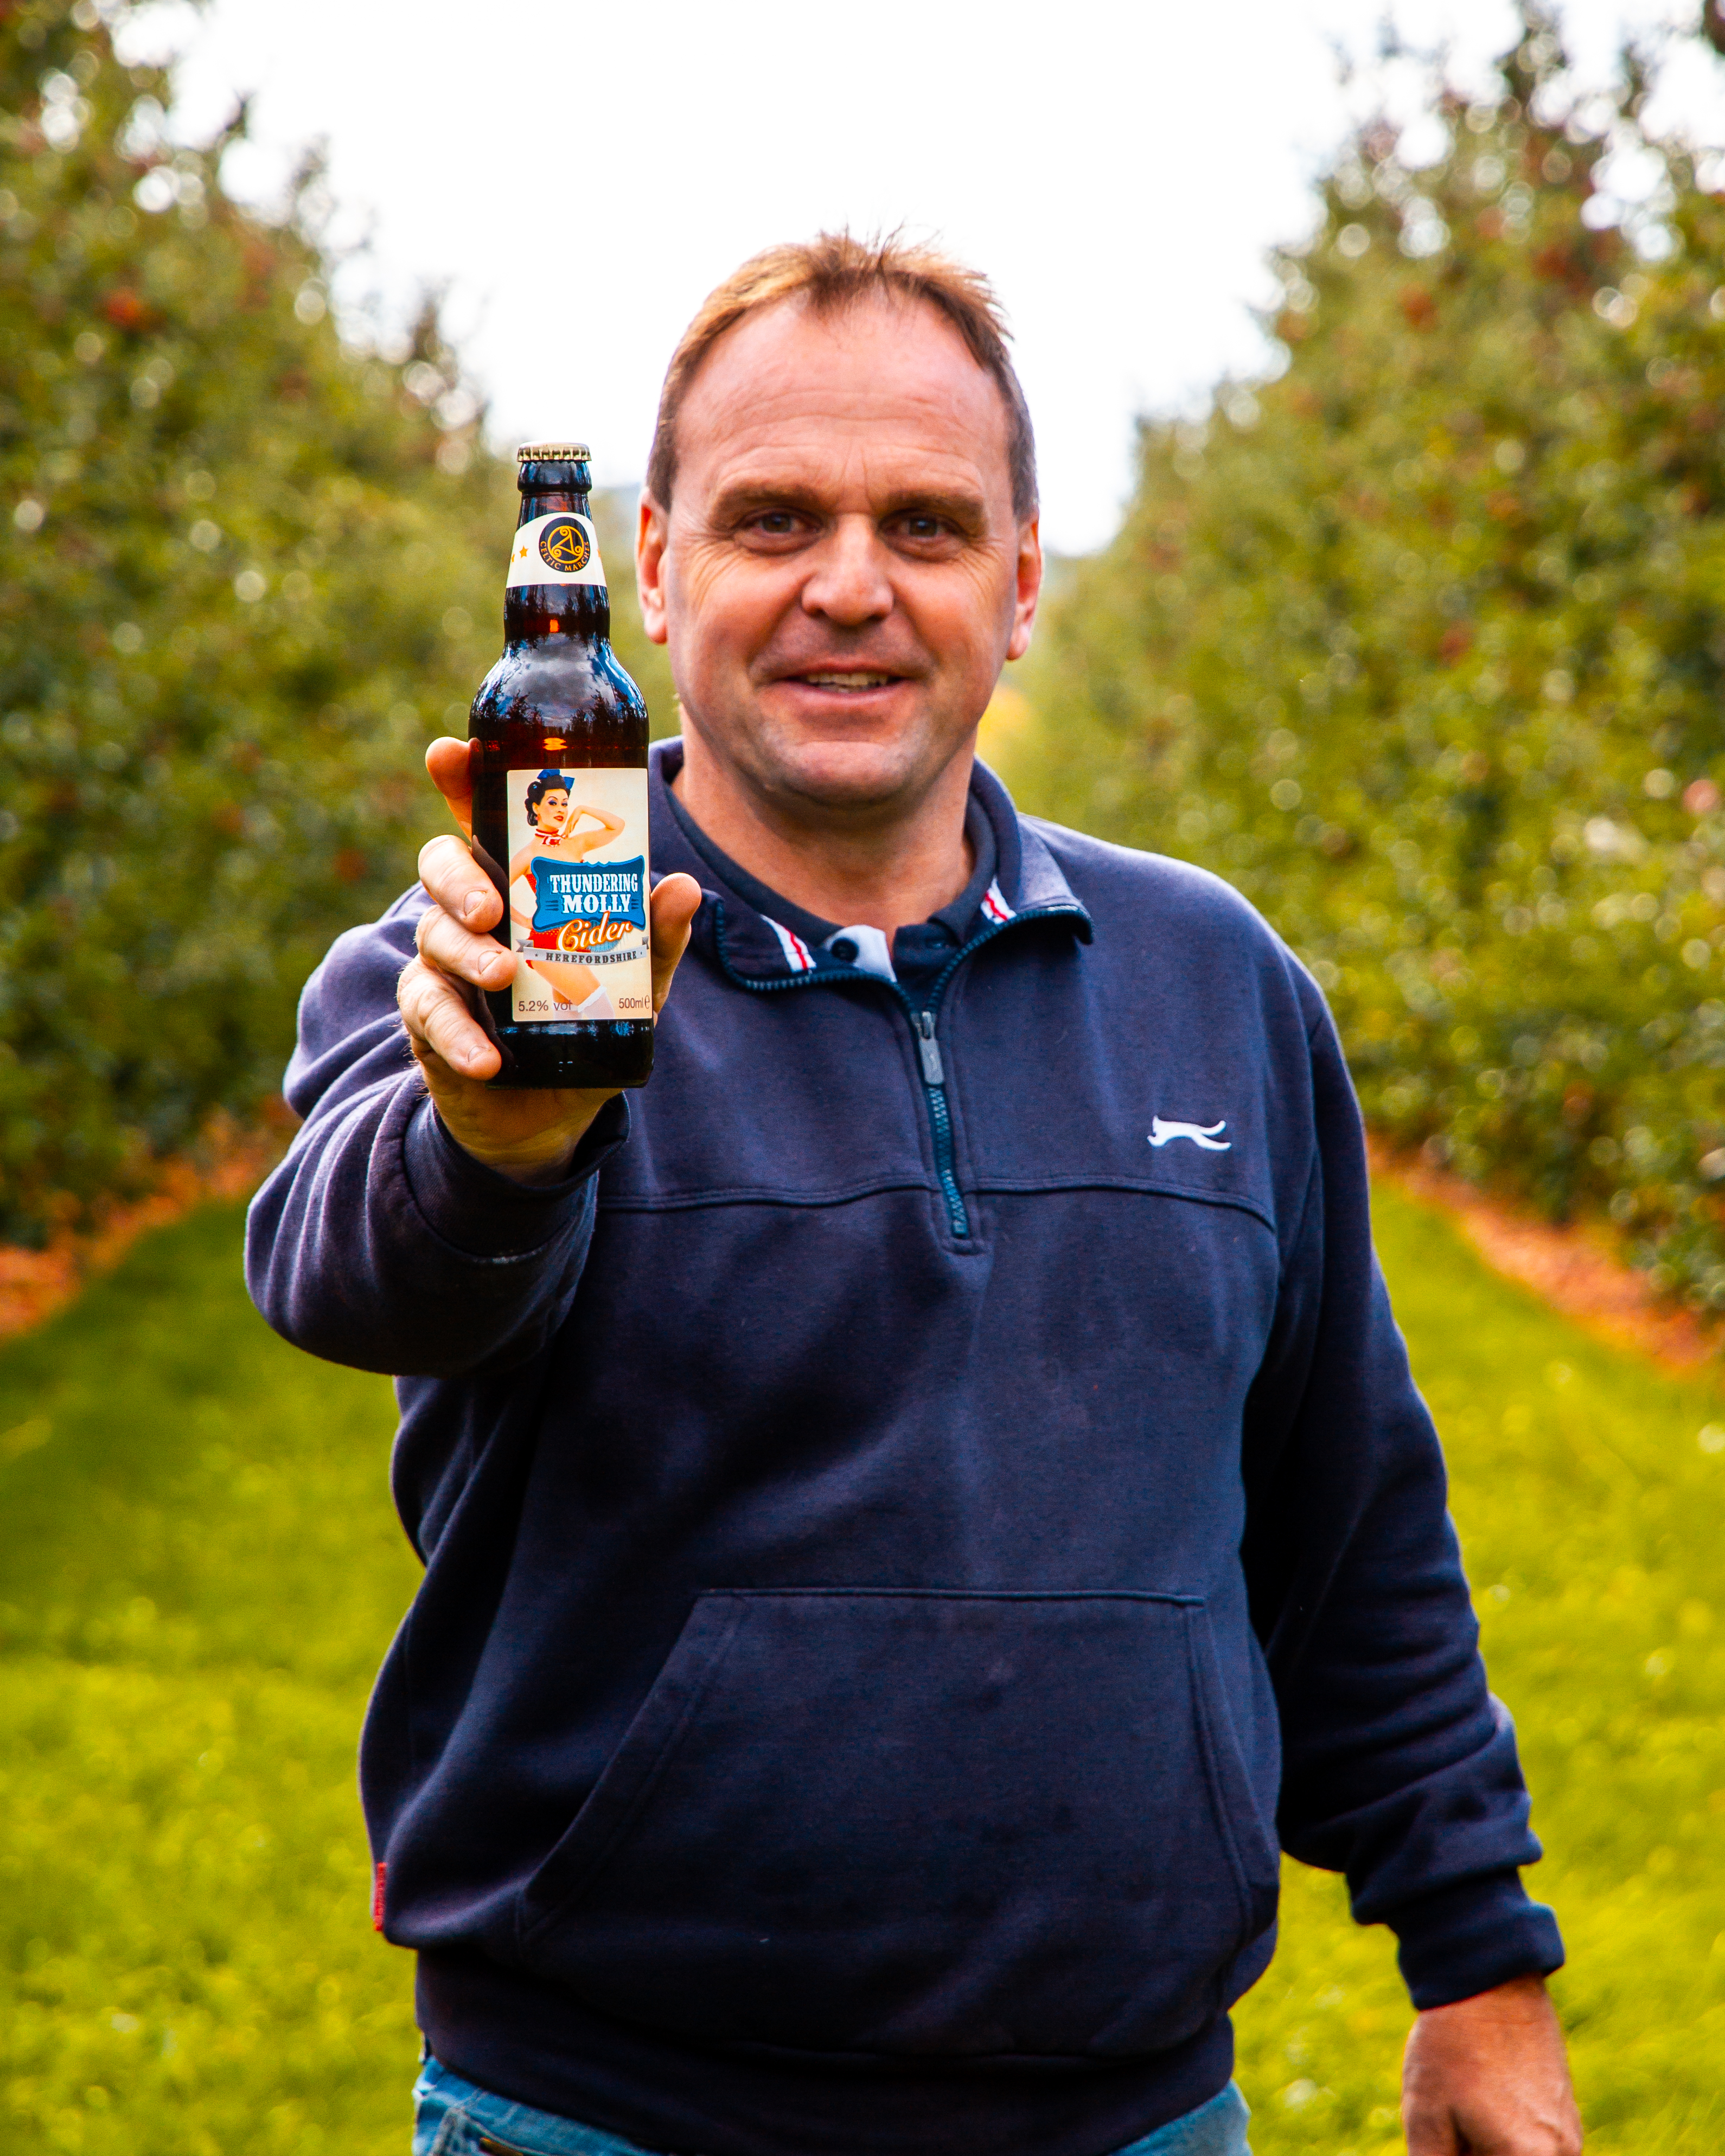 The Top 10 Herefordshire Ciders